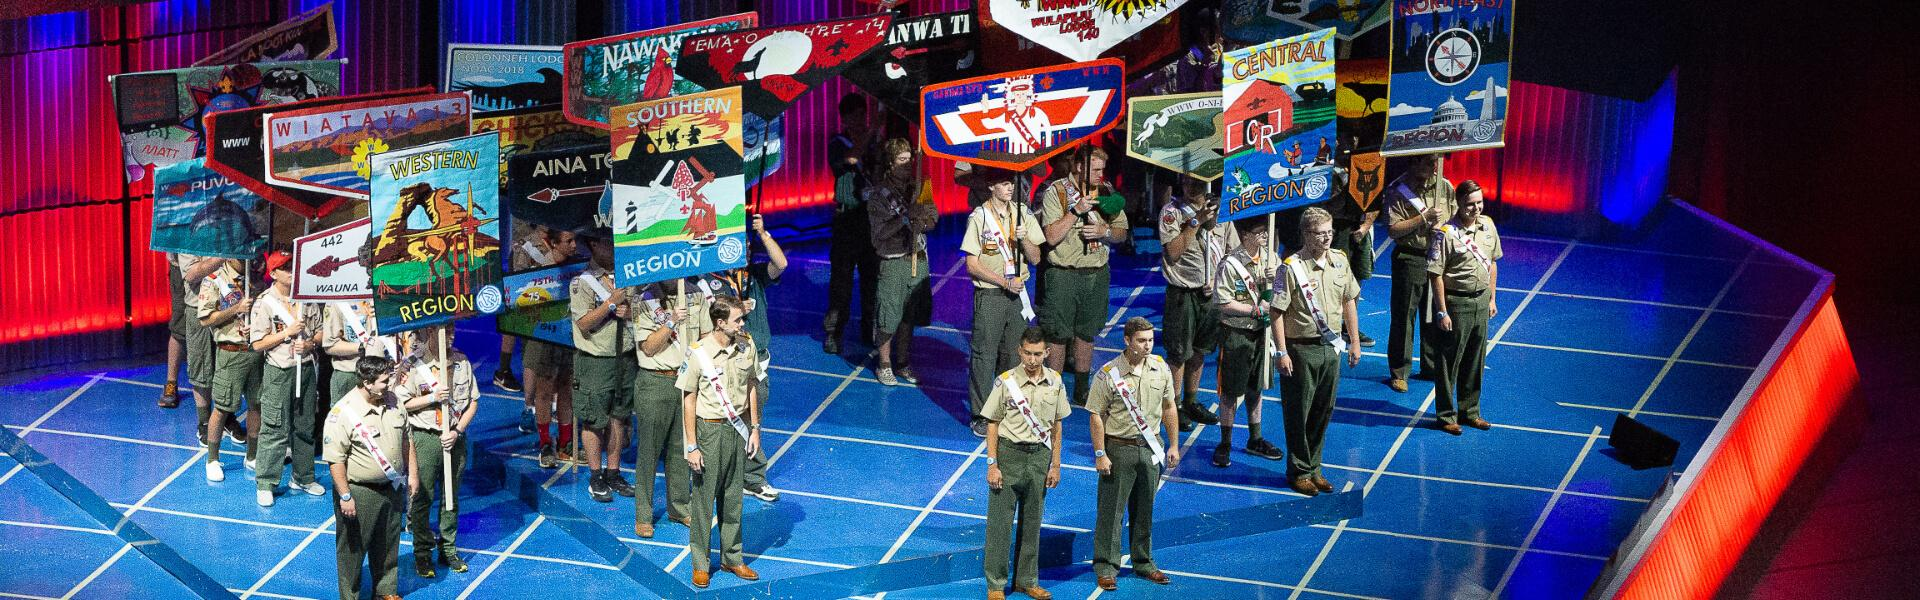 Parade of Lodges during the Opening Show at NOAC 2018